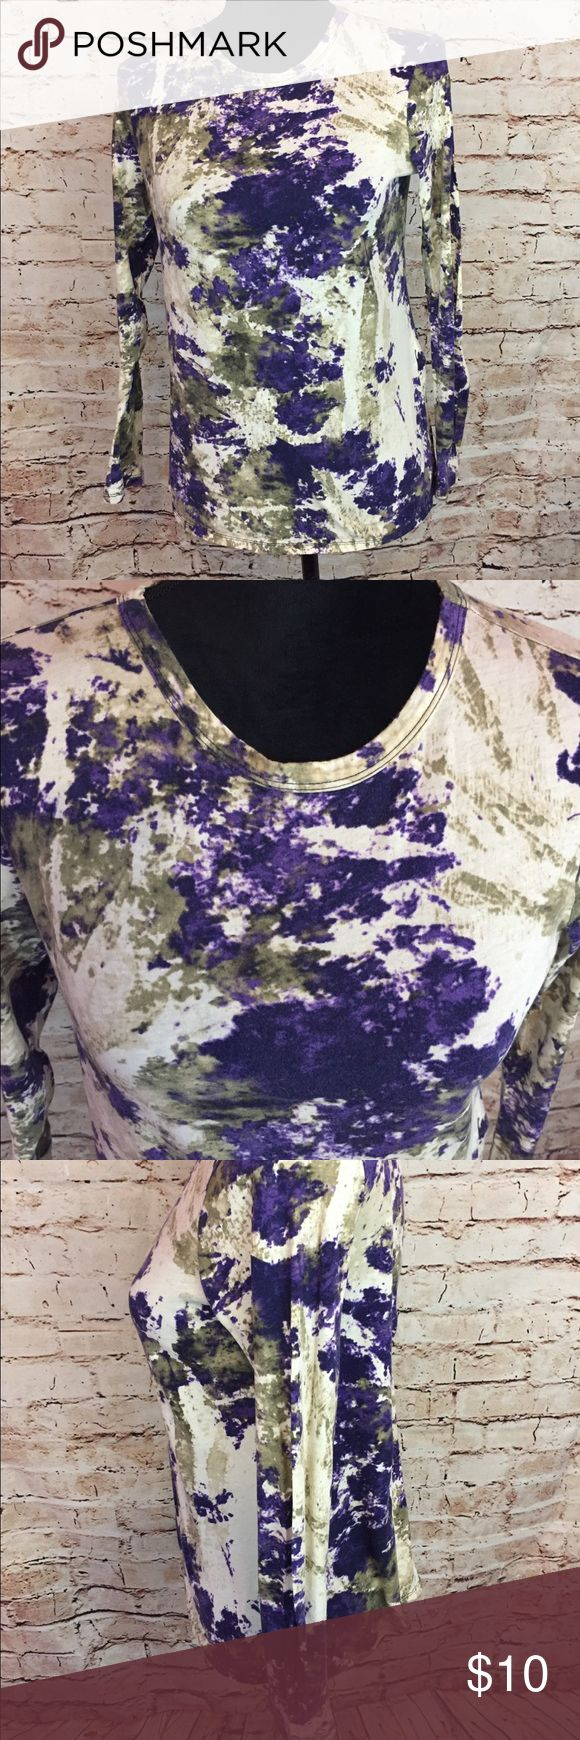 Simply Vera Wang Petite Blouse TyeDye Purple Small Simply Vera Wang  Women's Petite Blouse  Size Small Tye Dye Splatter Paint Purple/White  Please visit my Closet for other great priced items  BERRYFINECLOTHES  🍓🍓🍓🍓 Simply Vera Vera Wang Tops Blouses